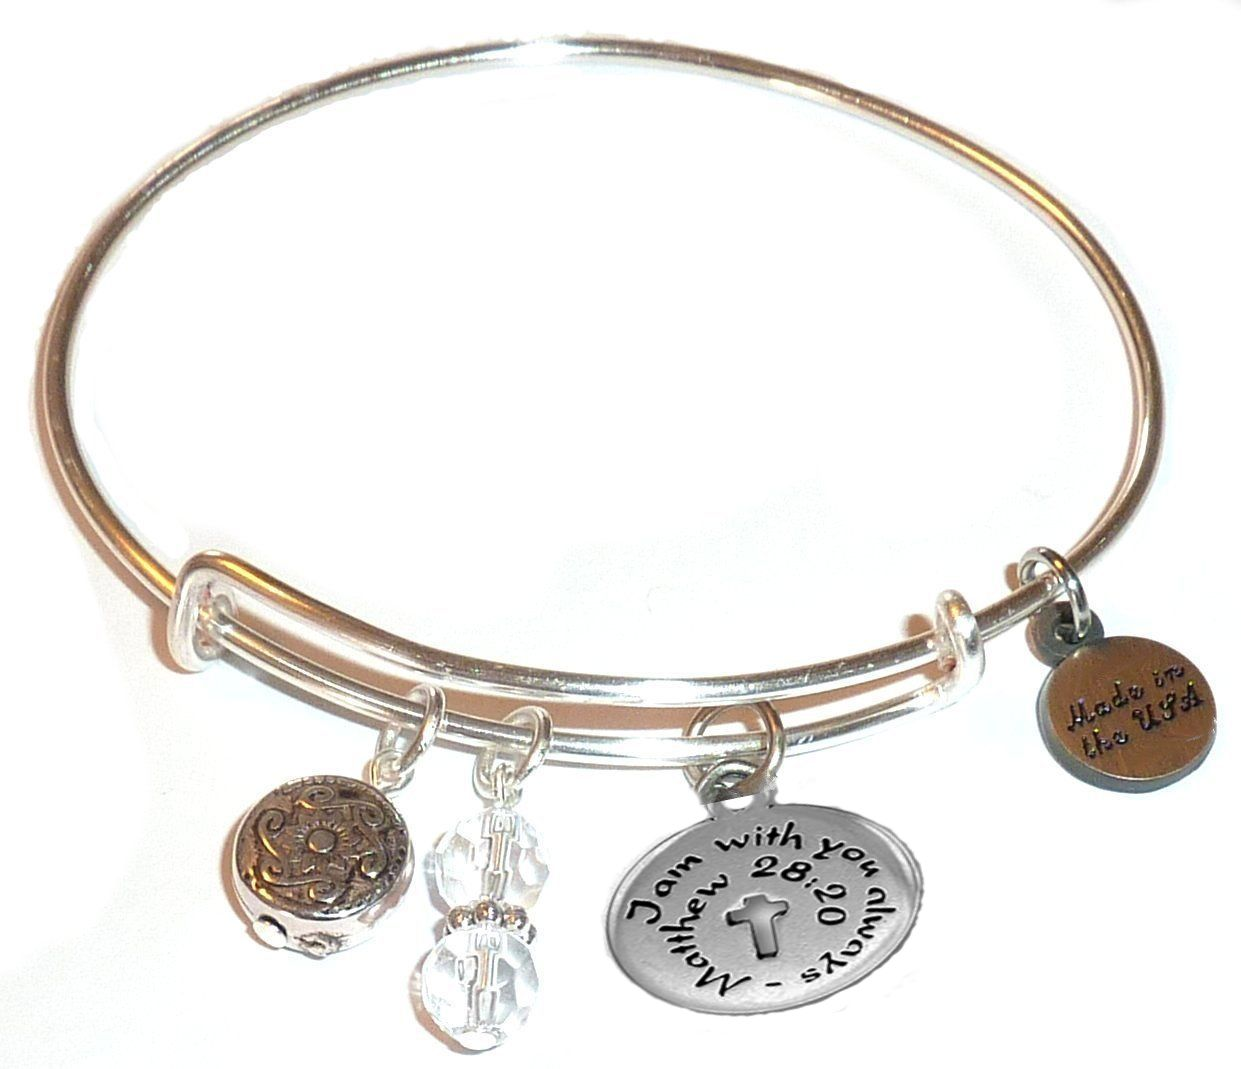 Religious Charm Bracelet: Bangle Bracelet Message